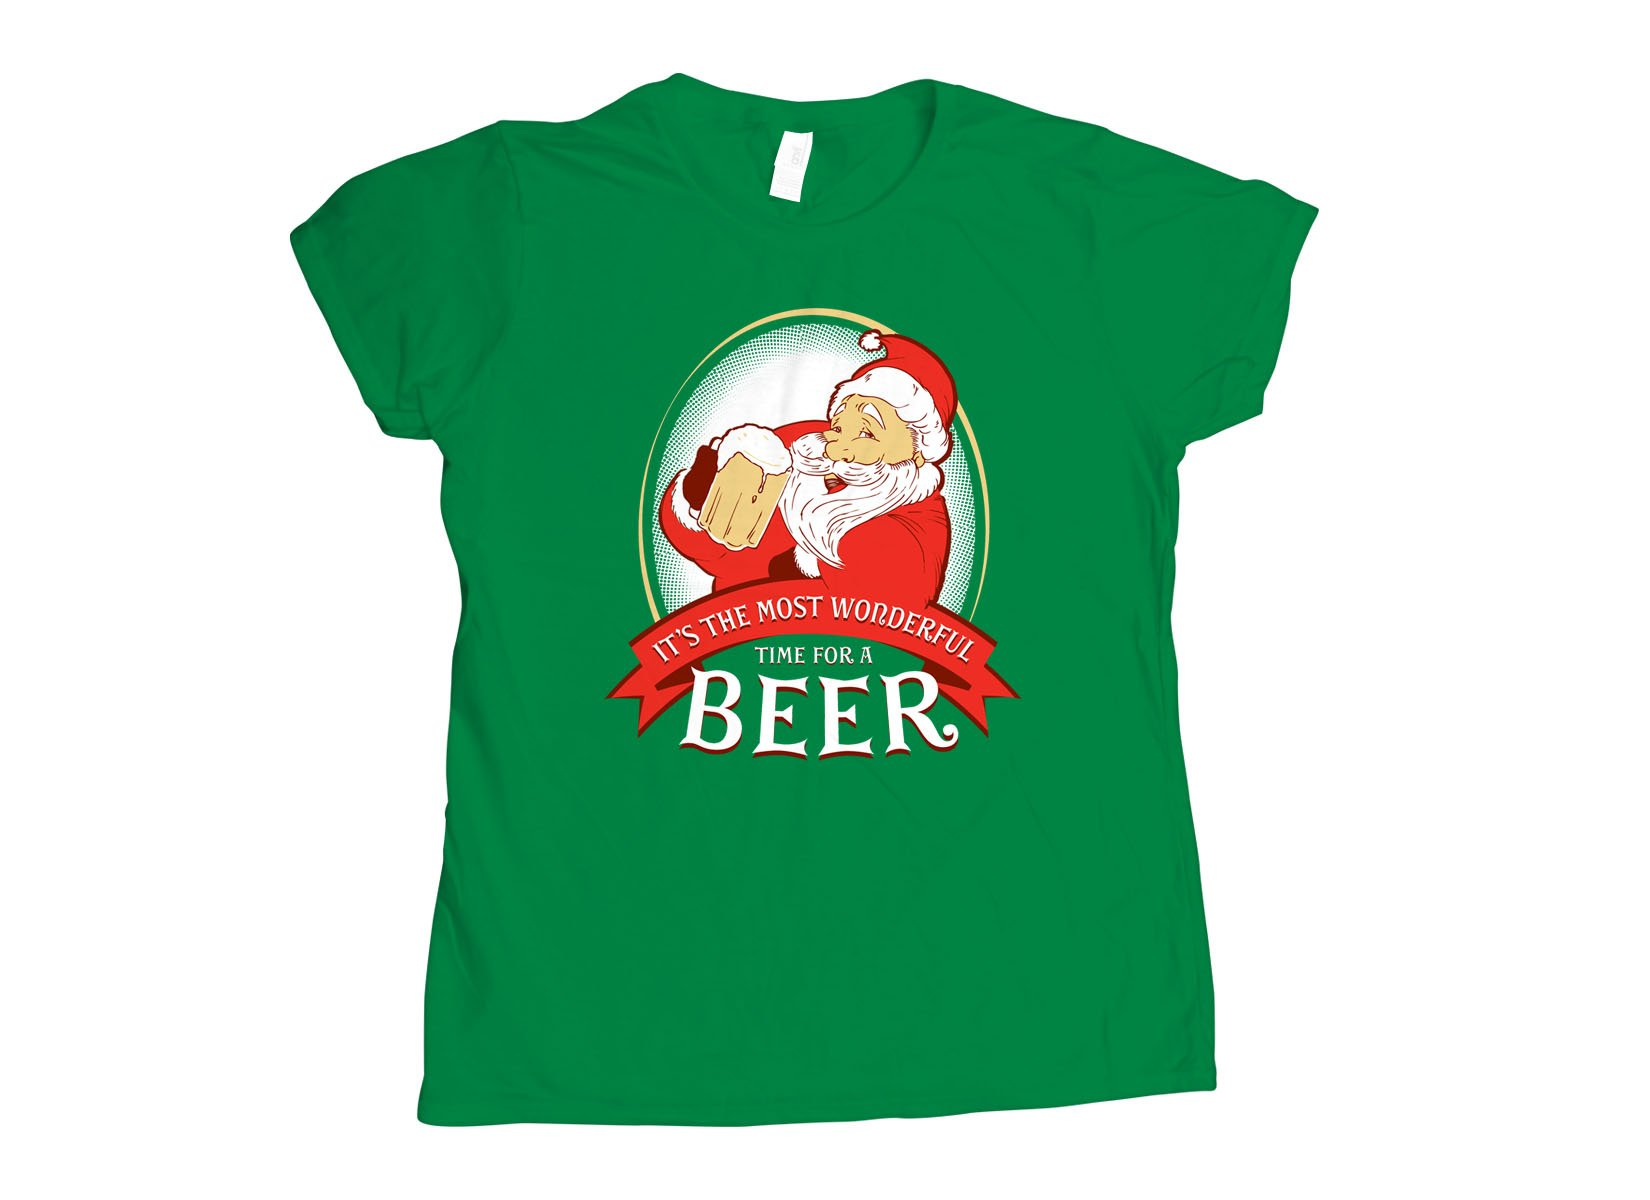 It's The Most Wonderful Time For A Beer on Womens T-Shirt